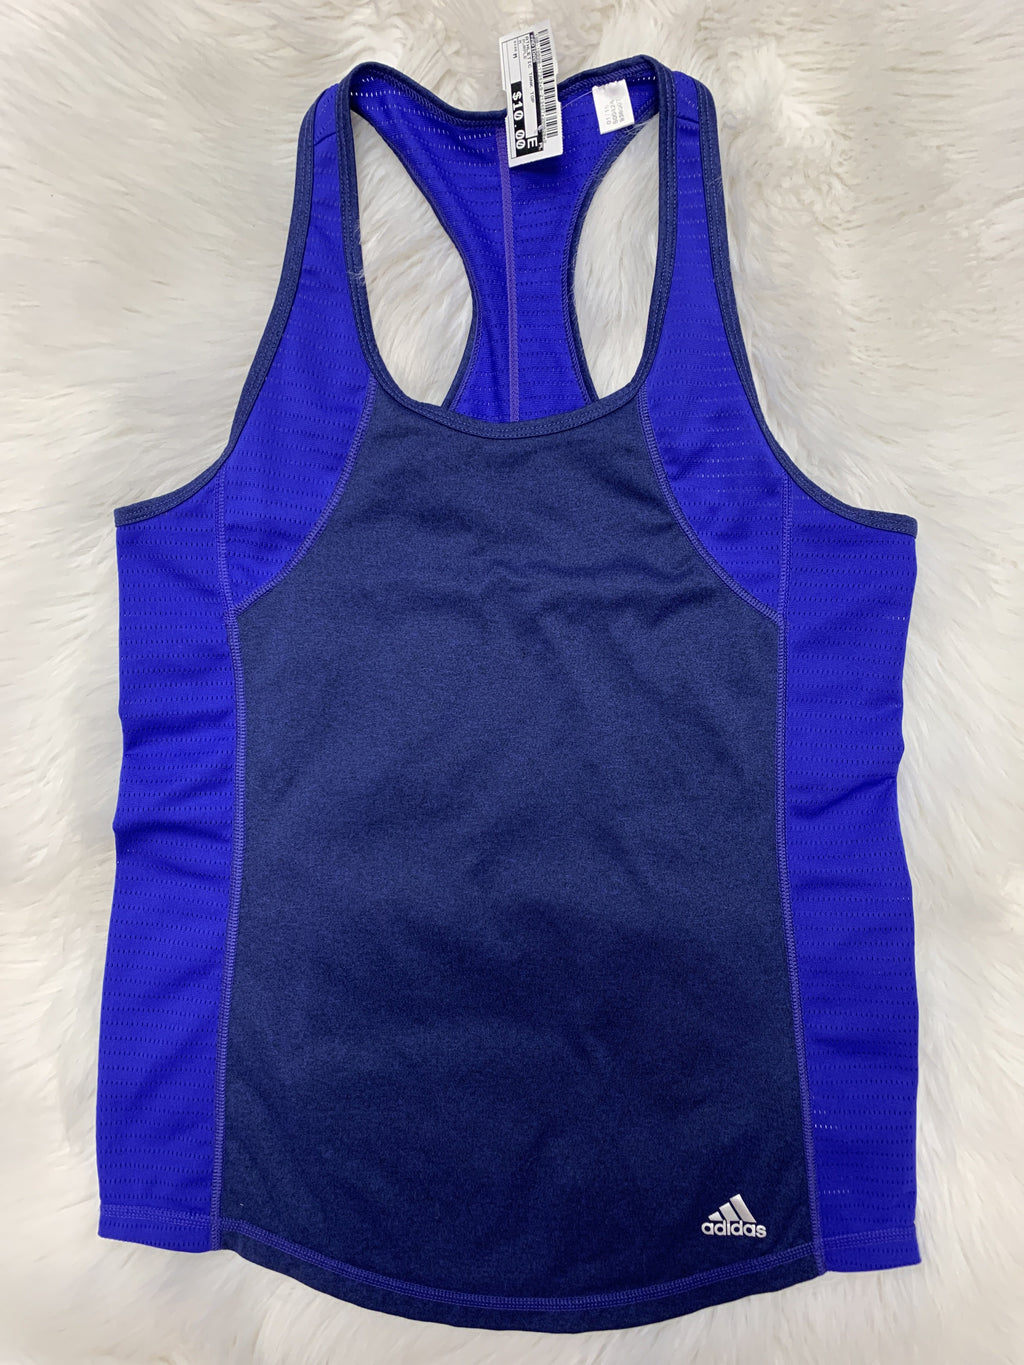 Adidas Athletic Tank Top Medium